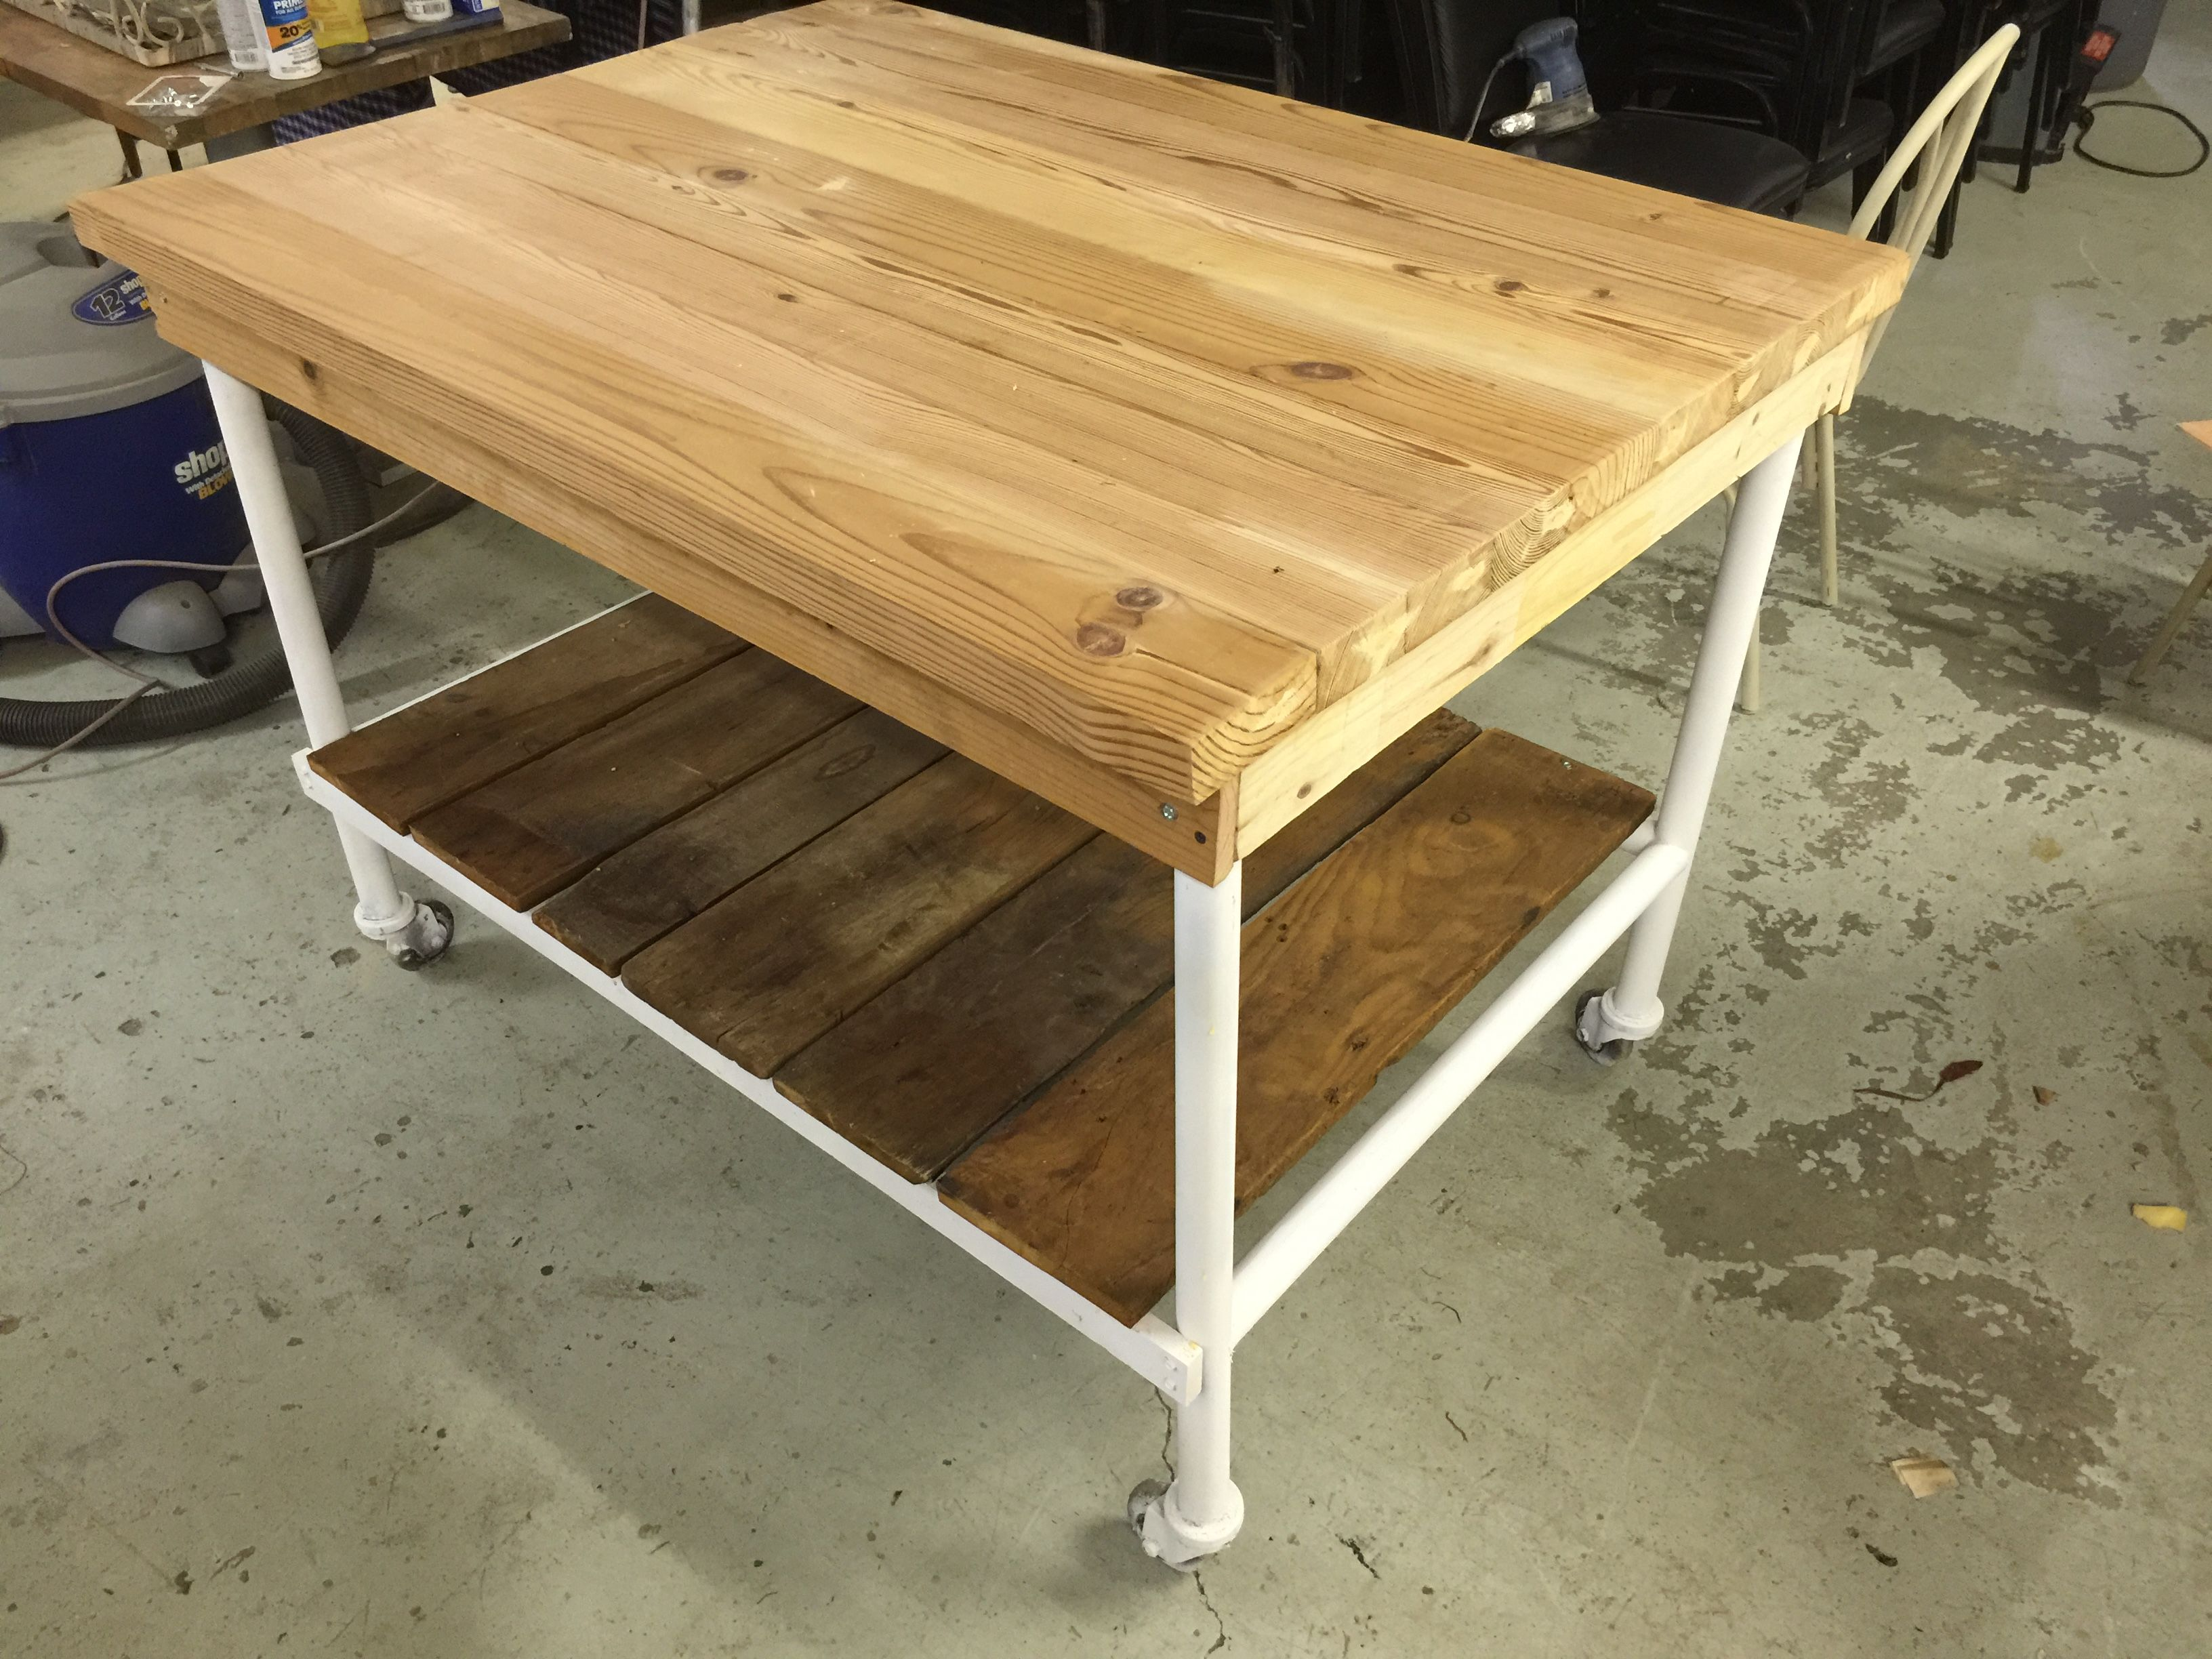 Custom built repurposed upcycled Kitchen Island Table made using